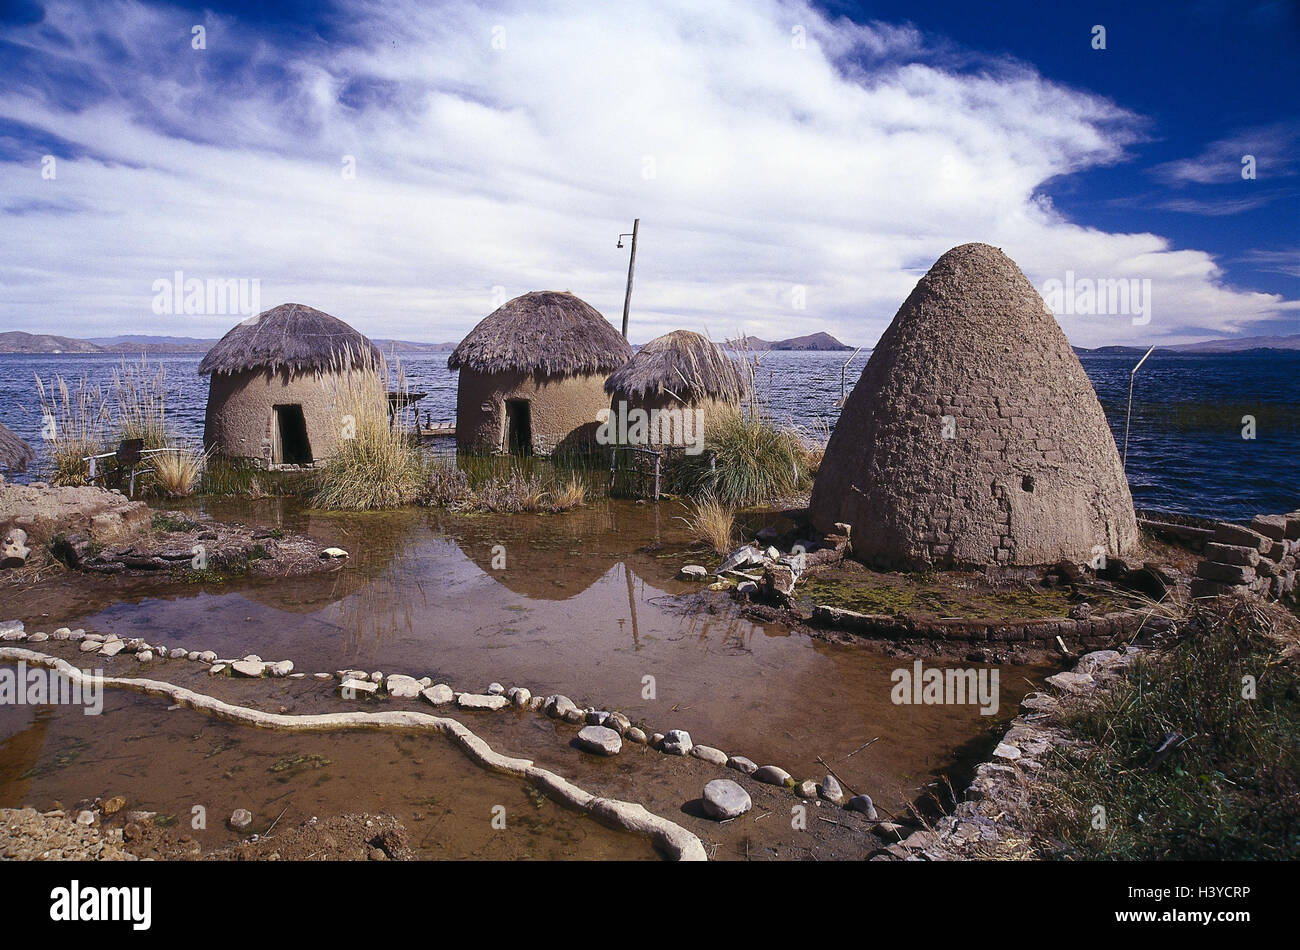 Bolivia, Titicacasee, shore, mucky hut, traditionally, outside, hut, houses, accomodation, water, lake, loam, construction - Stock Image